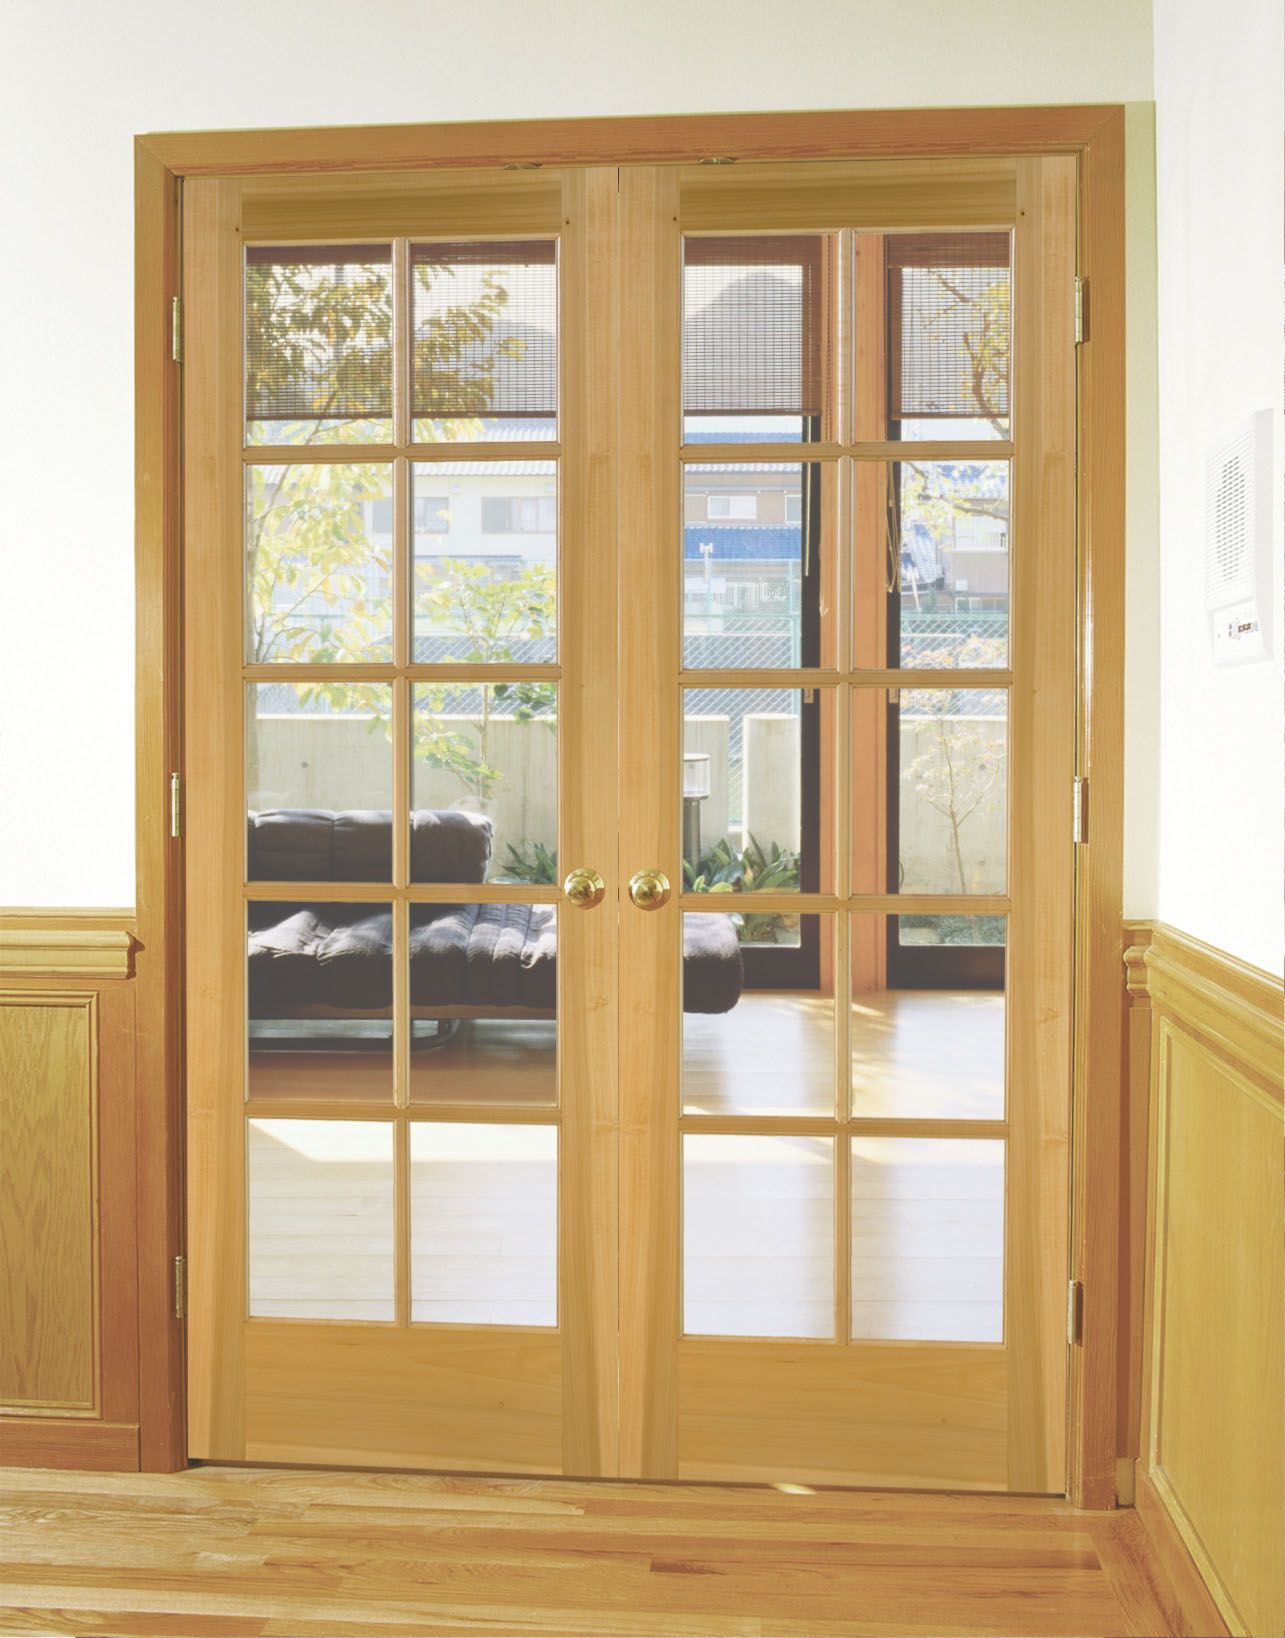 1638 #946F37 Pin By Woodgrain Millwork On Doors Pinterest picture/photo Millwork Doors 48191285